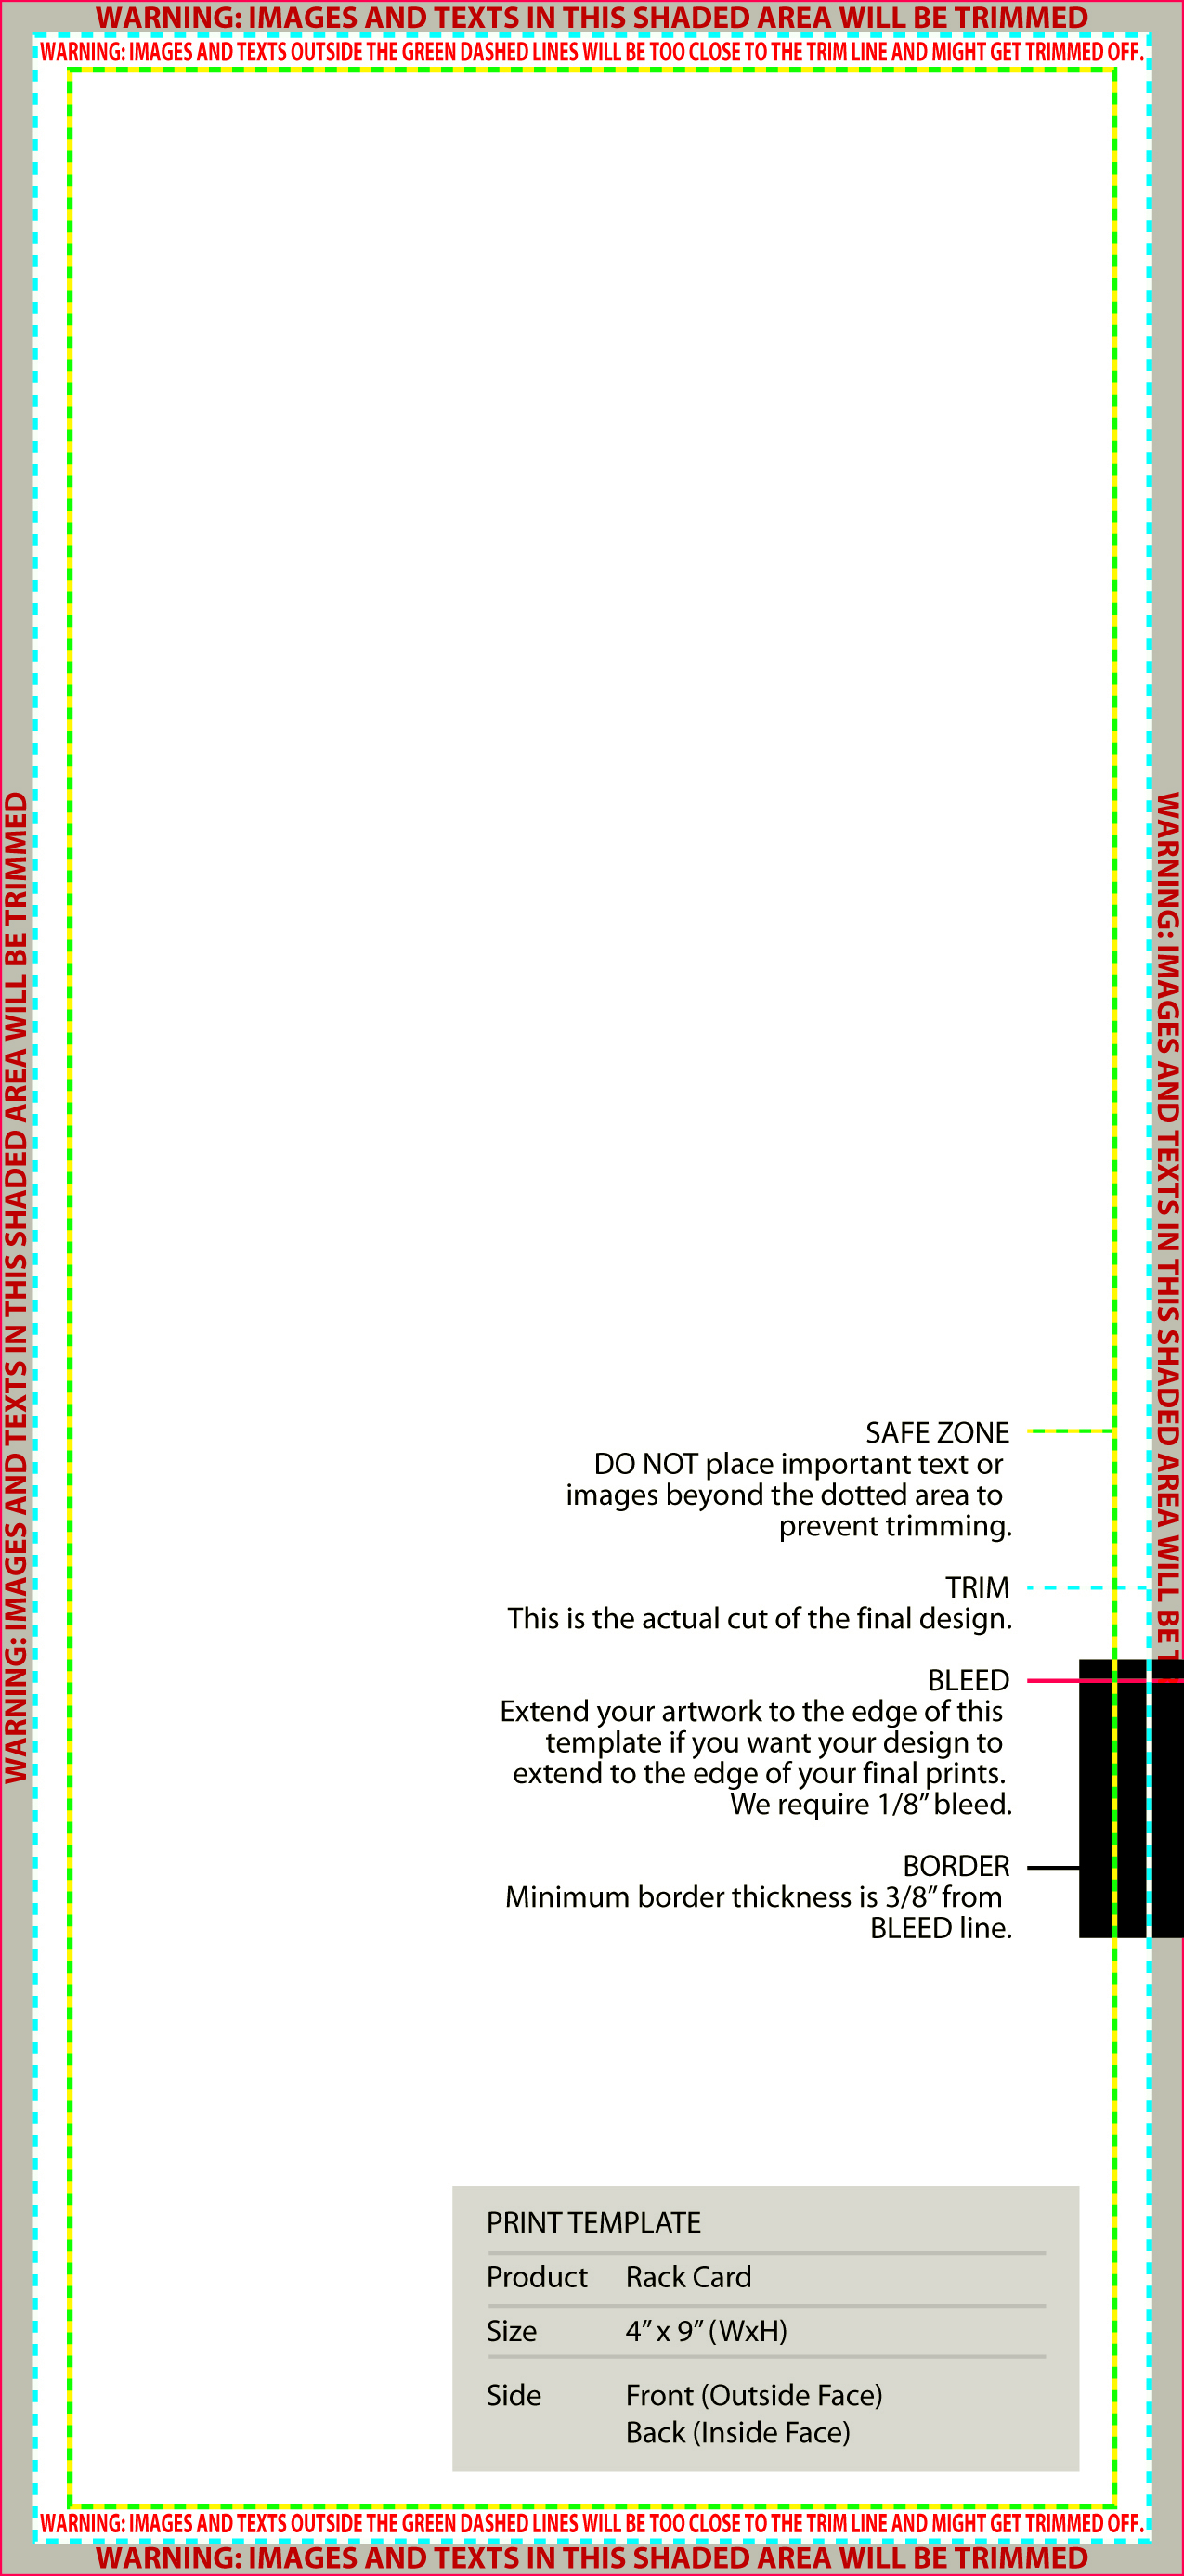 Standard Templates - Rack card template publisher